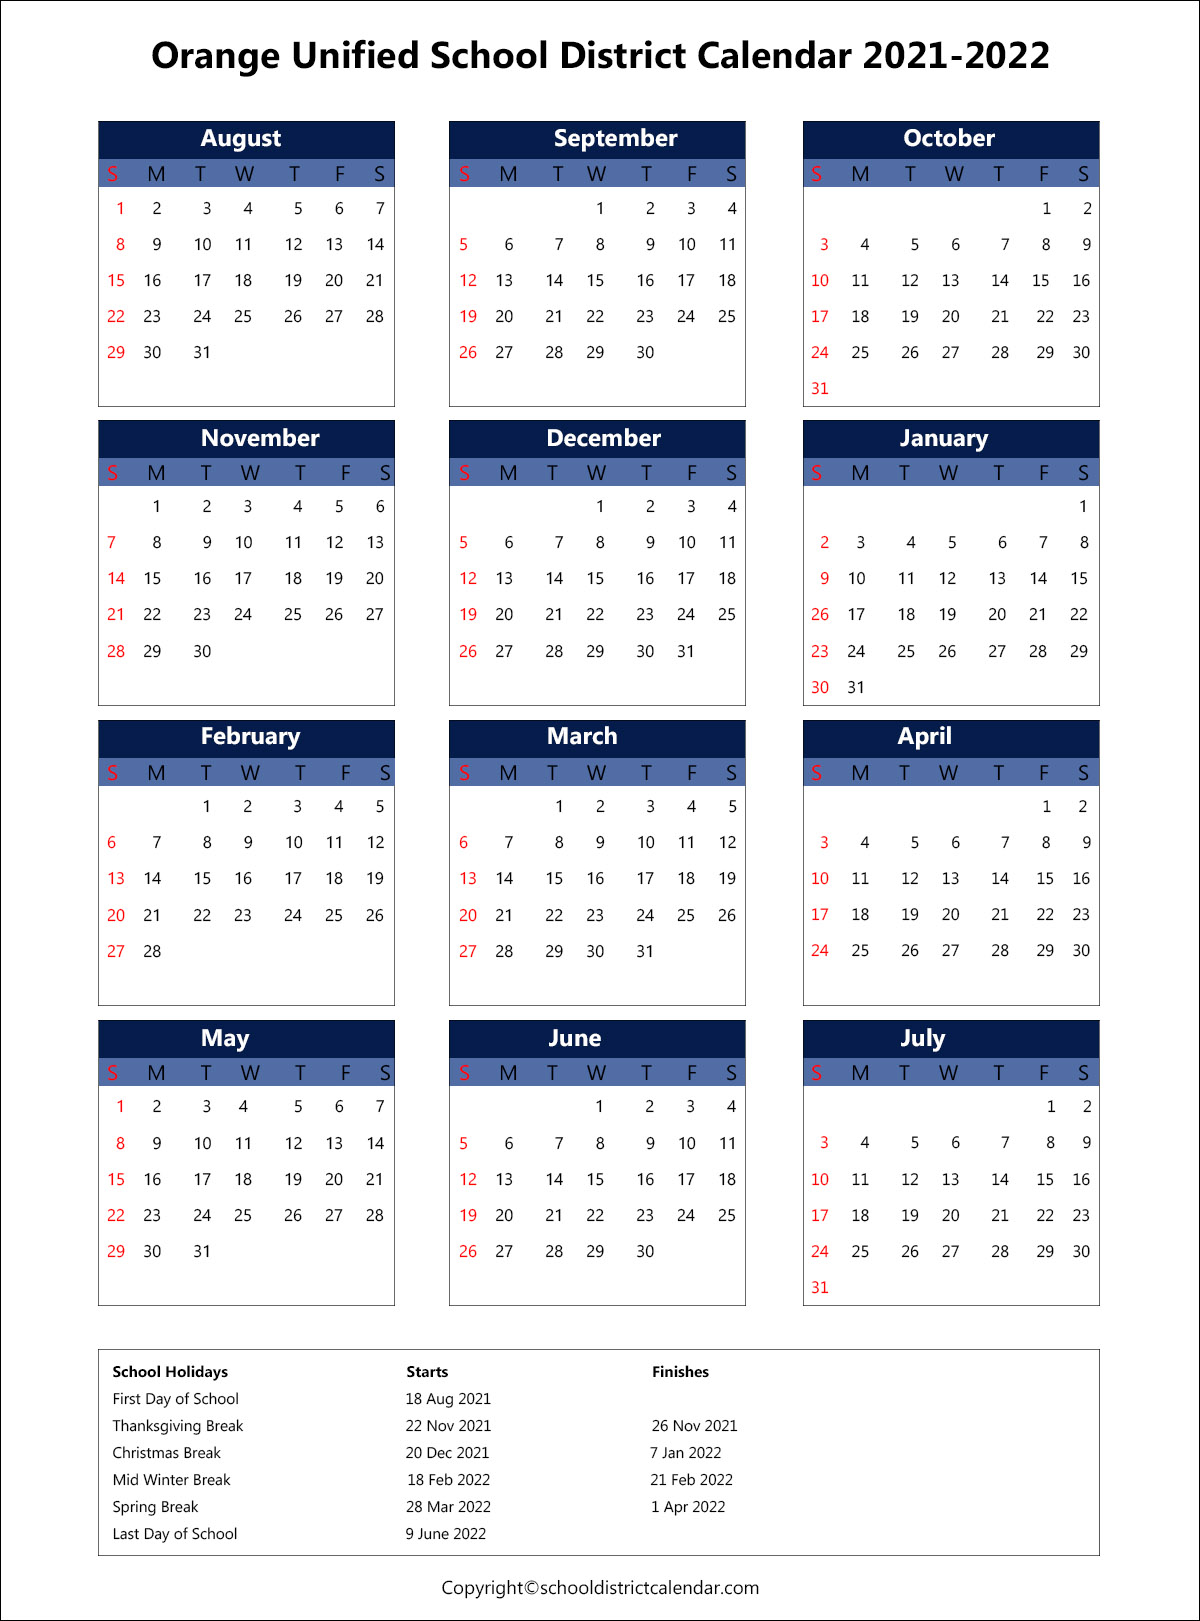 Orange Unified School District Calendar 2021